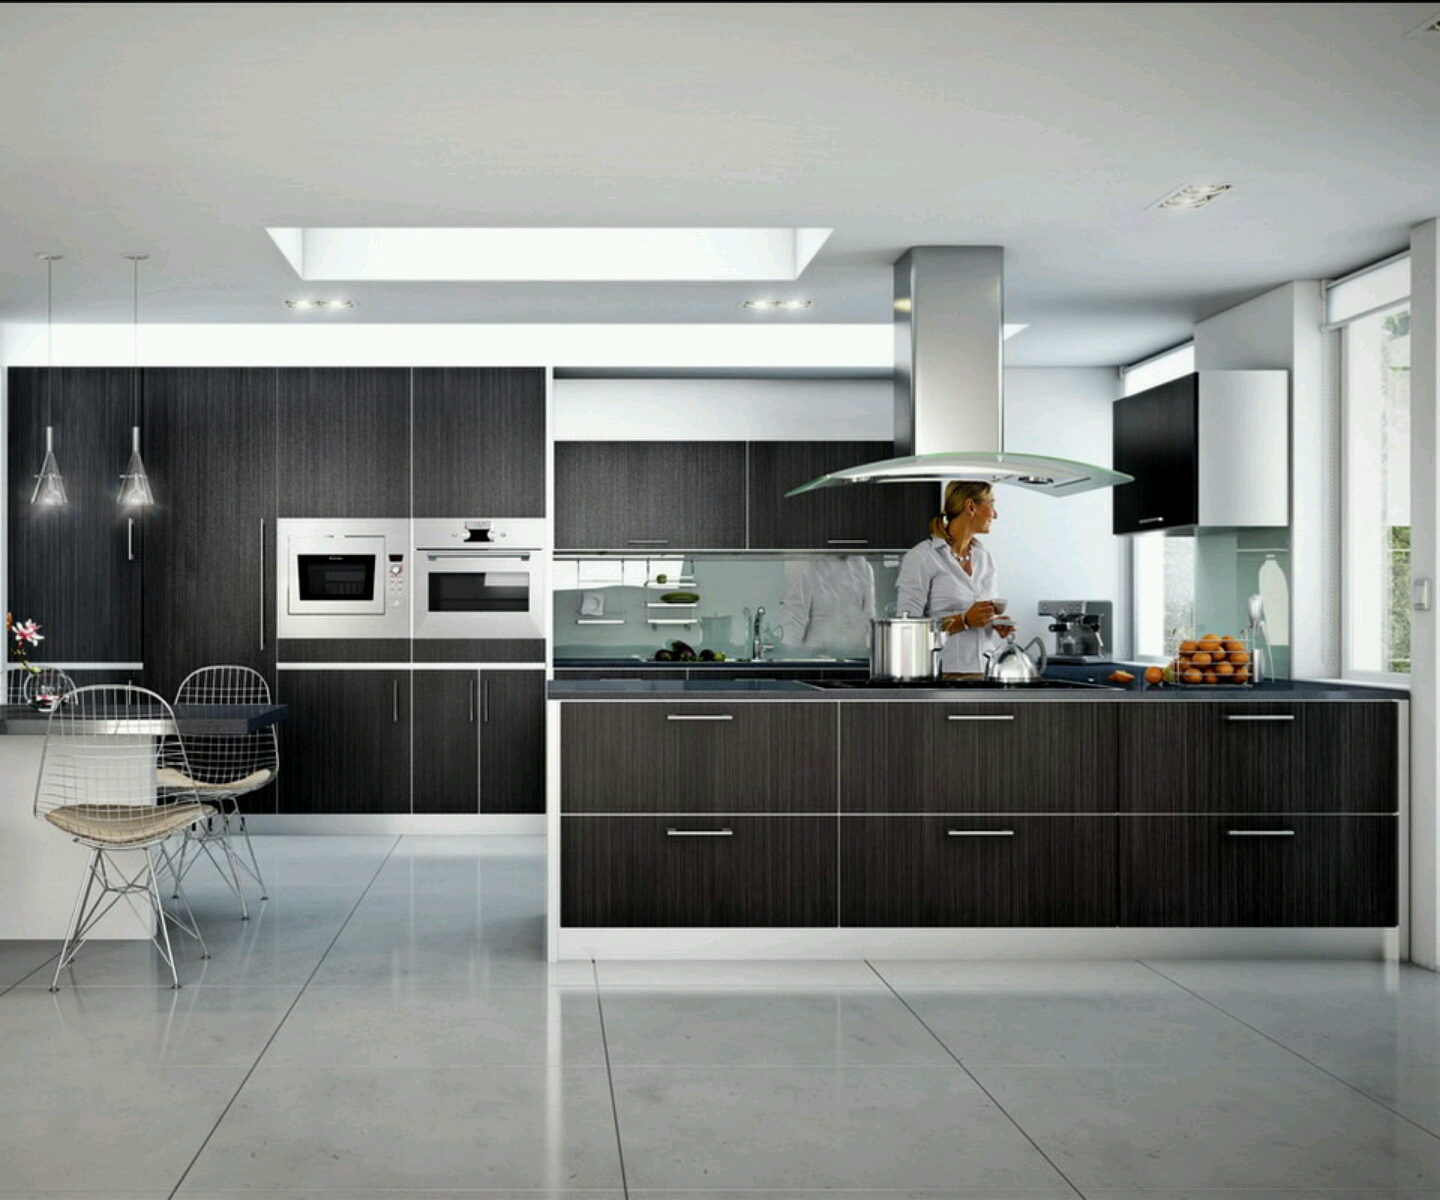 Rumah rumah minimalis modern homes ultra modern kitchen for Best modern kitchen design